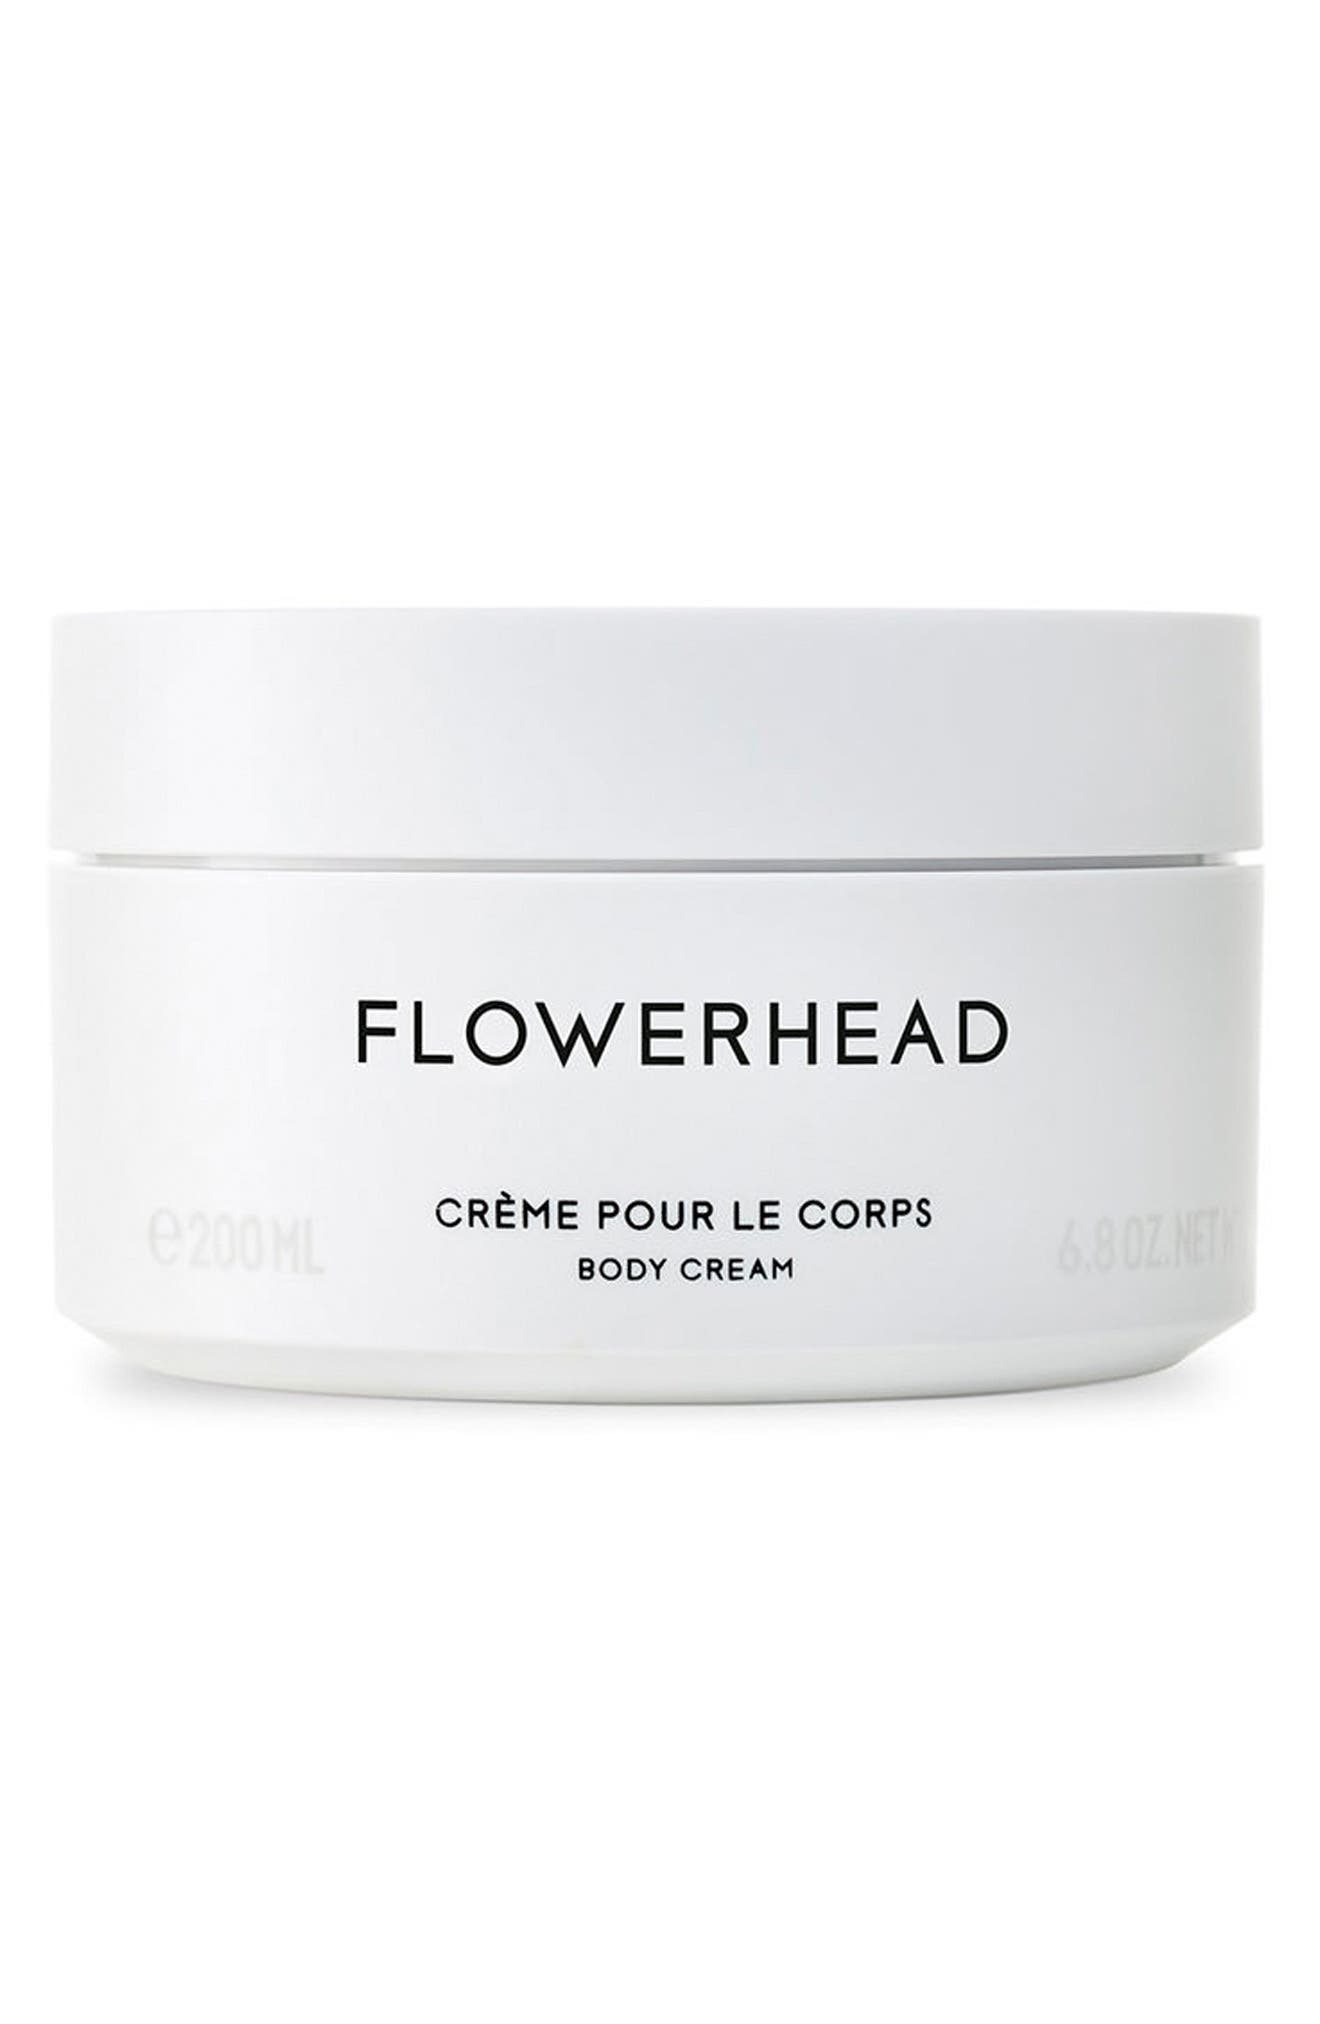 Flowerhead Body Cream,                             Main thumbnail 1, color,                             No Color